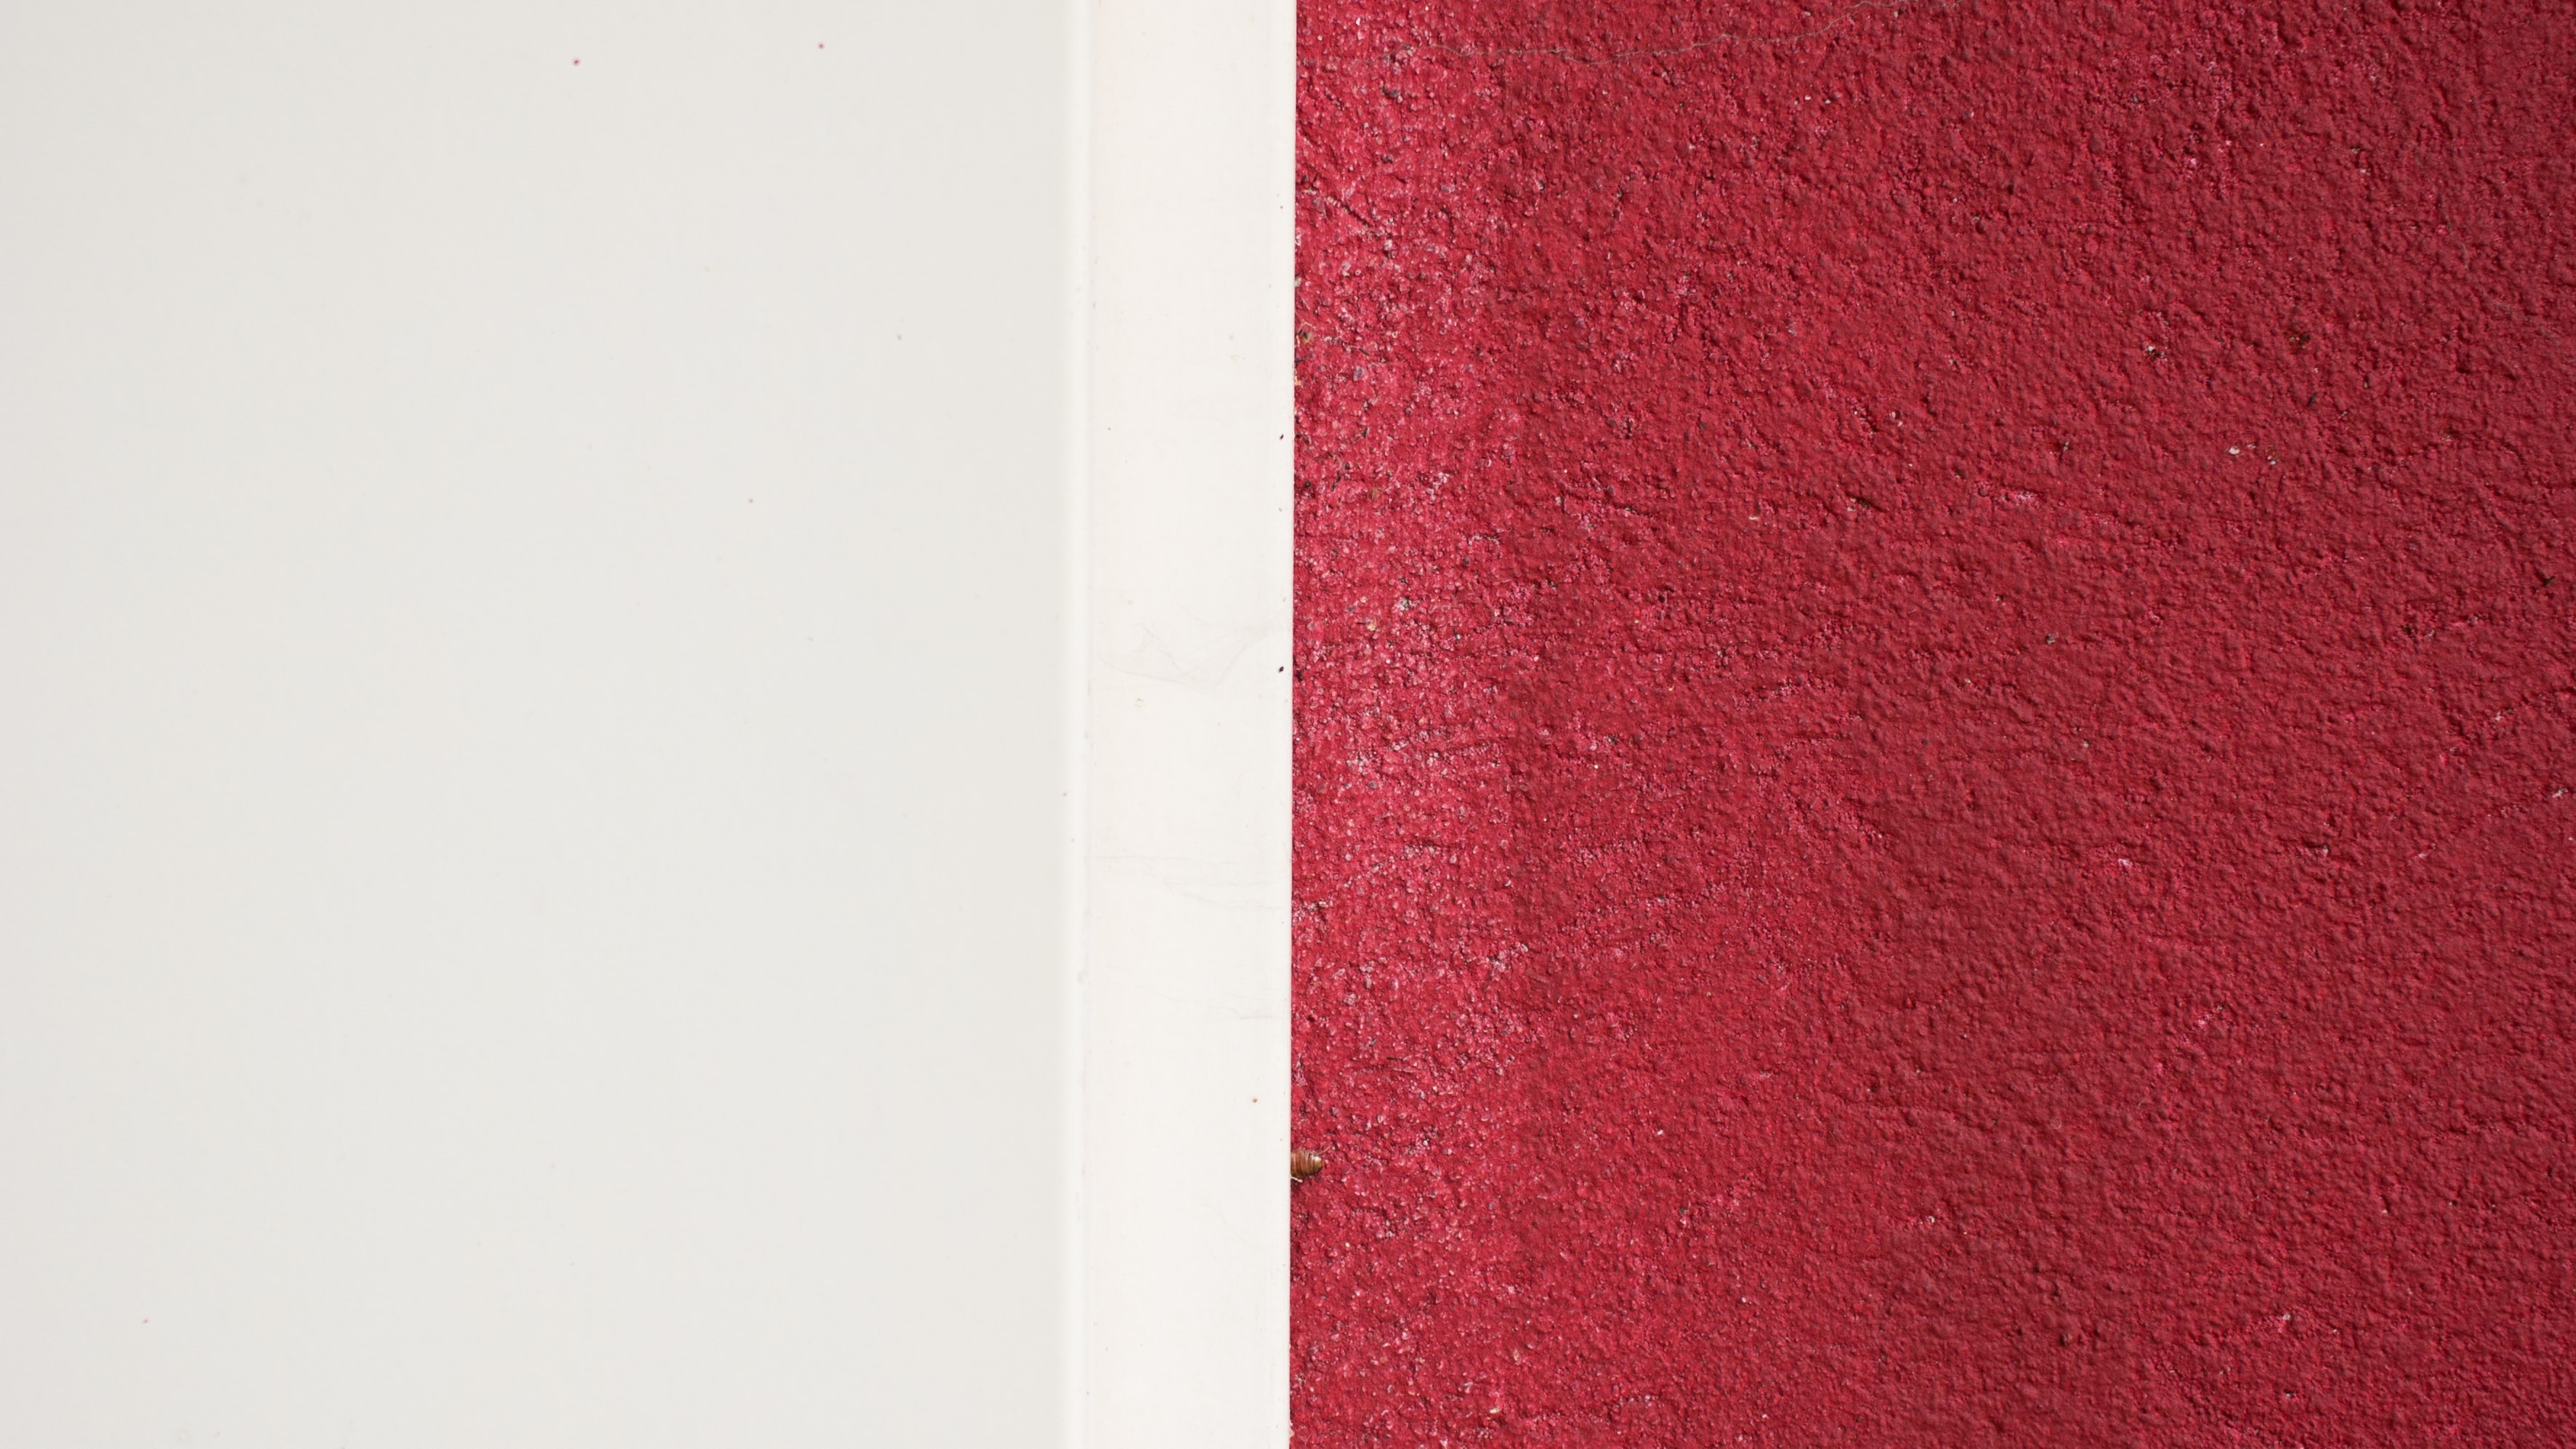 A straight line dividing parts of a wall painted white and red